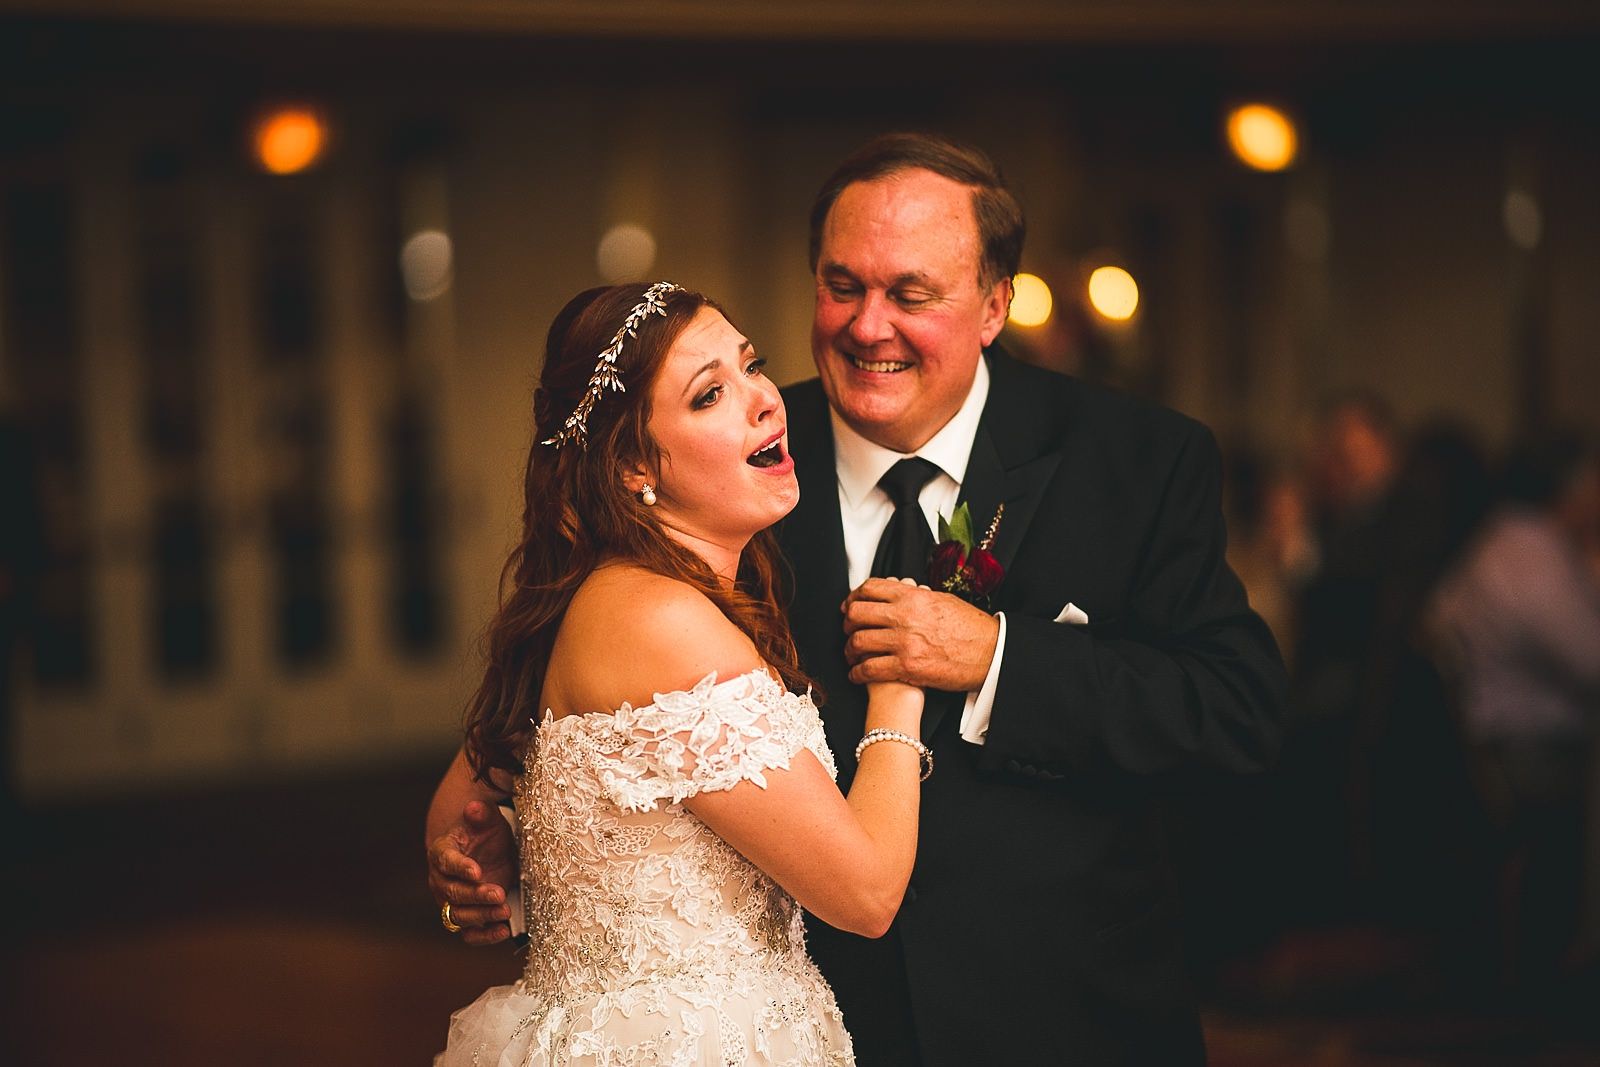 70 bride happy dancing with dad - Hilton Chicago Wedding Photographer // Sarah + Aaron